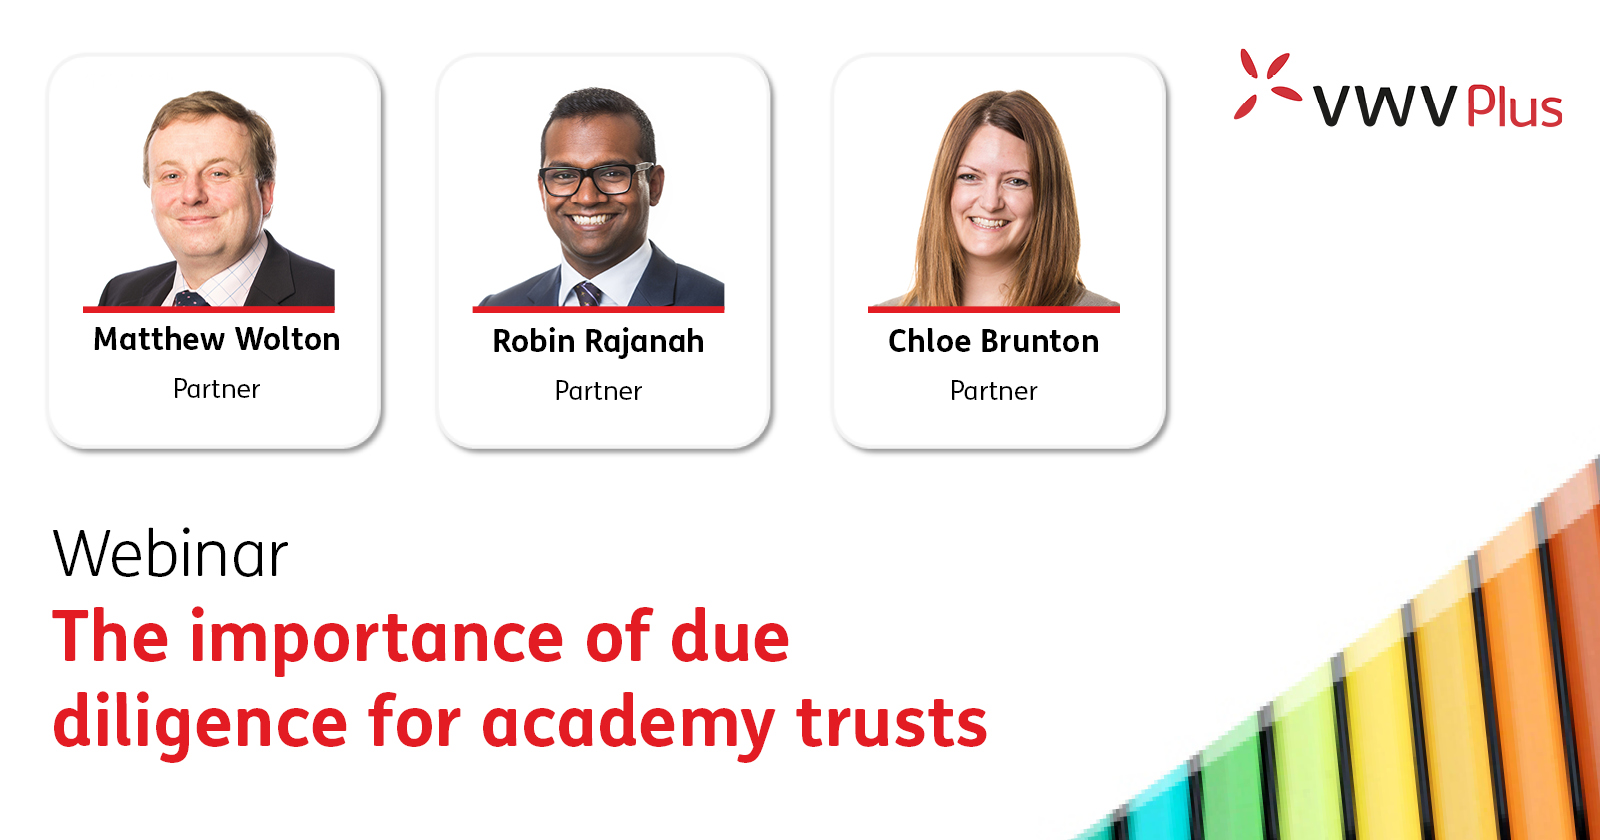 The importance of due diligence for academy trusts